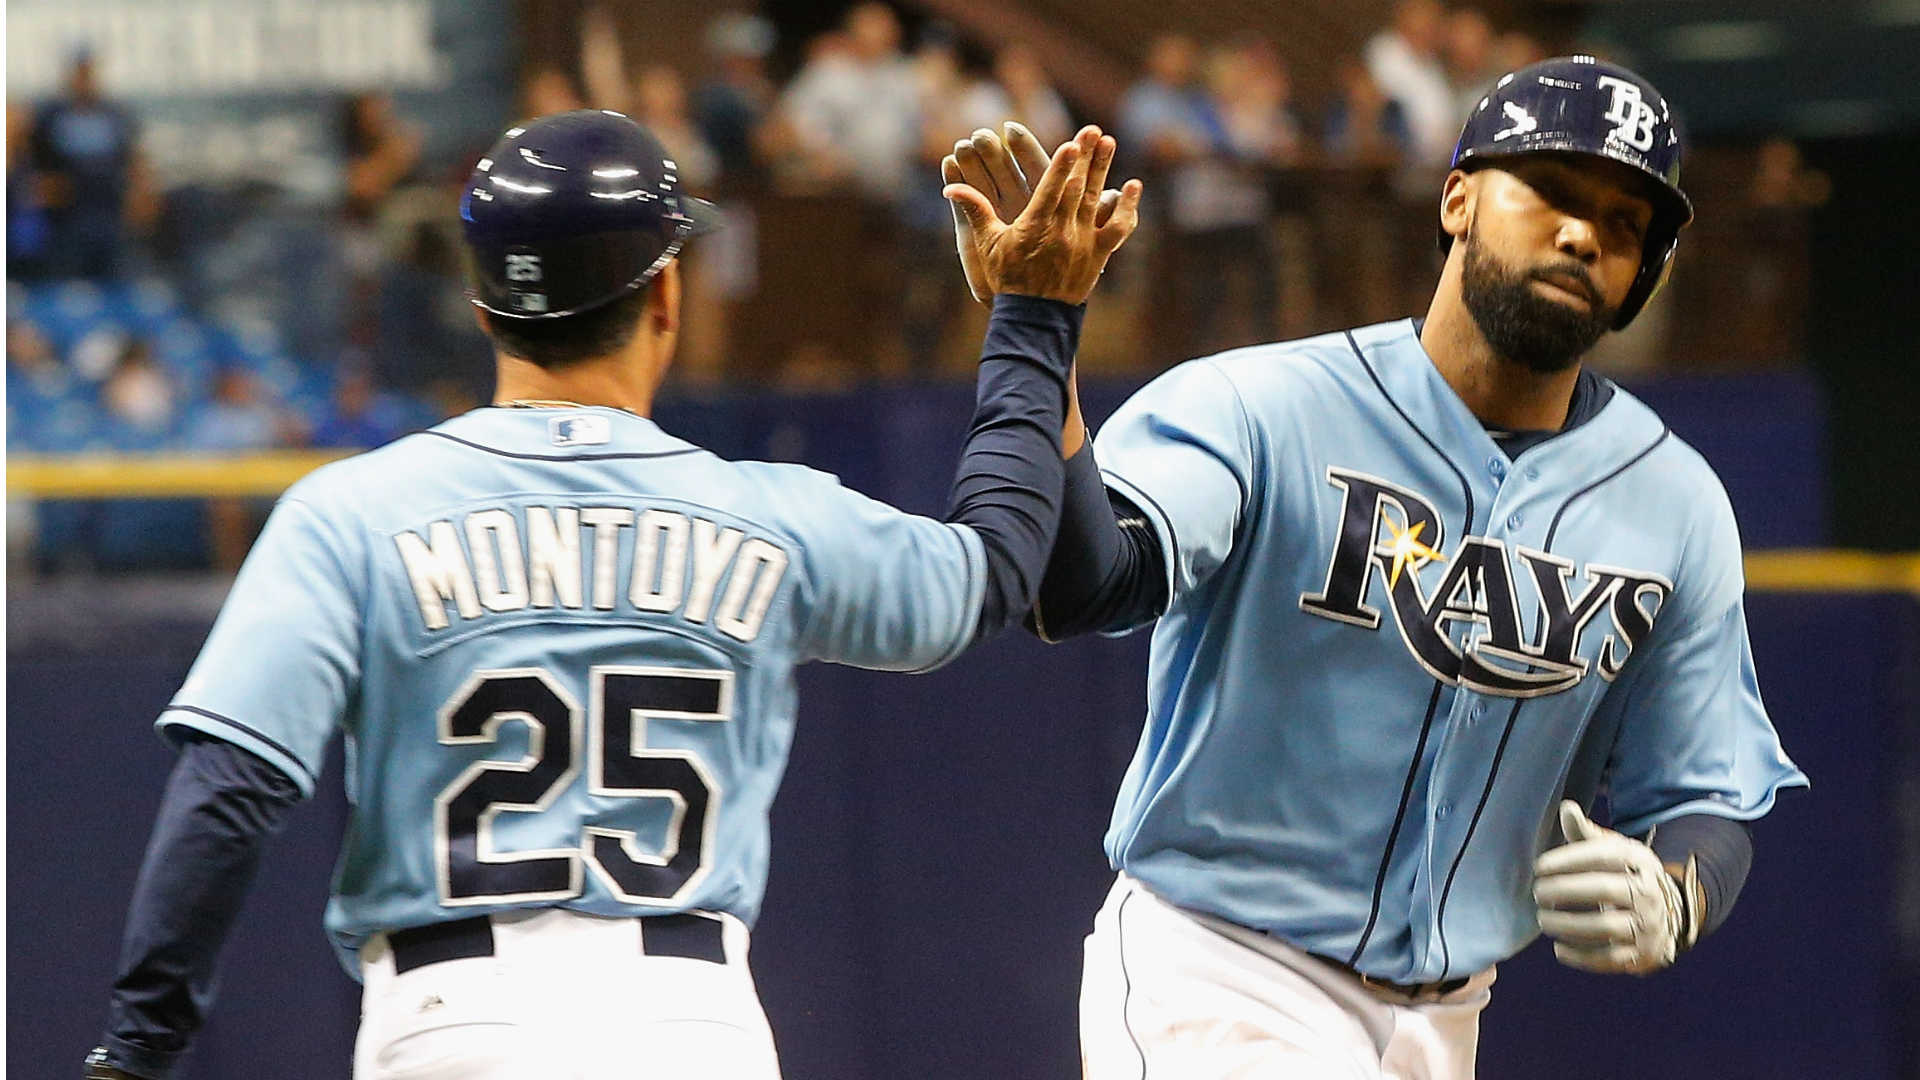 tampa-bay-rays-2122016-us-news-getty-ftr